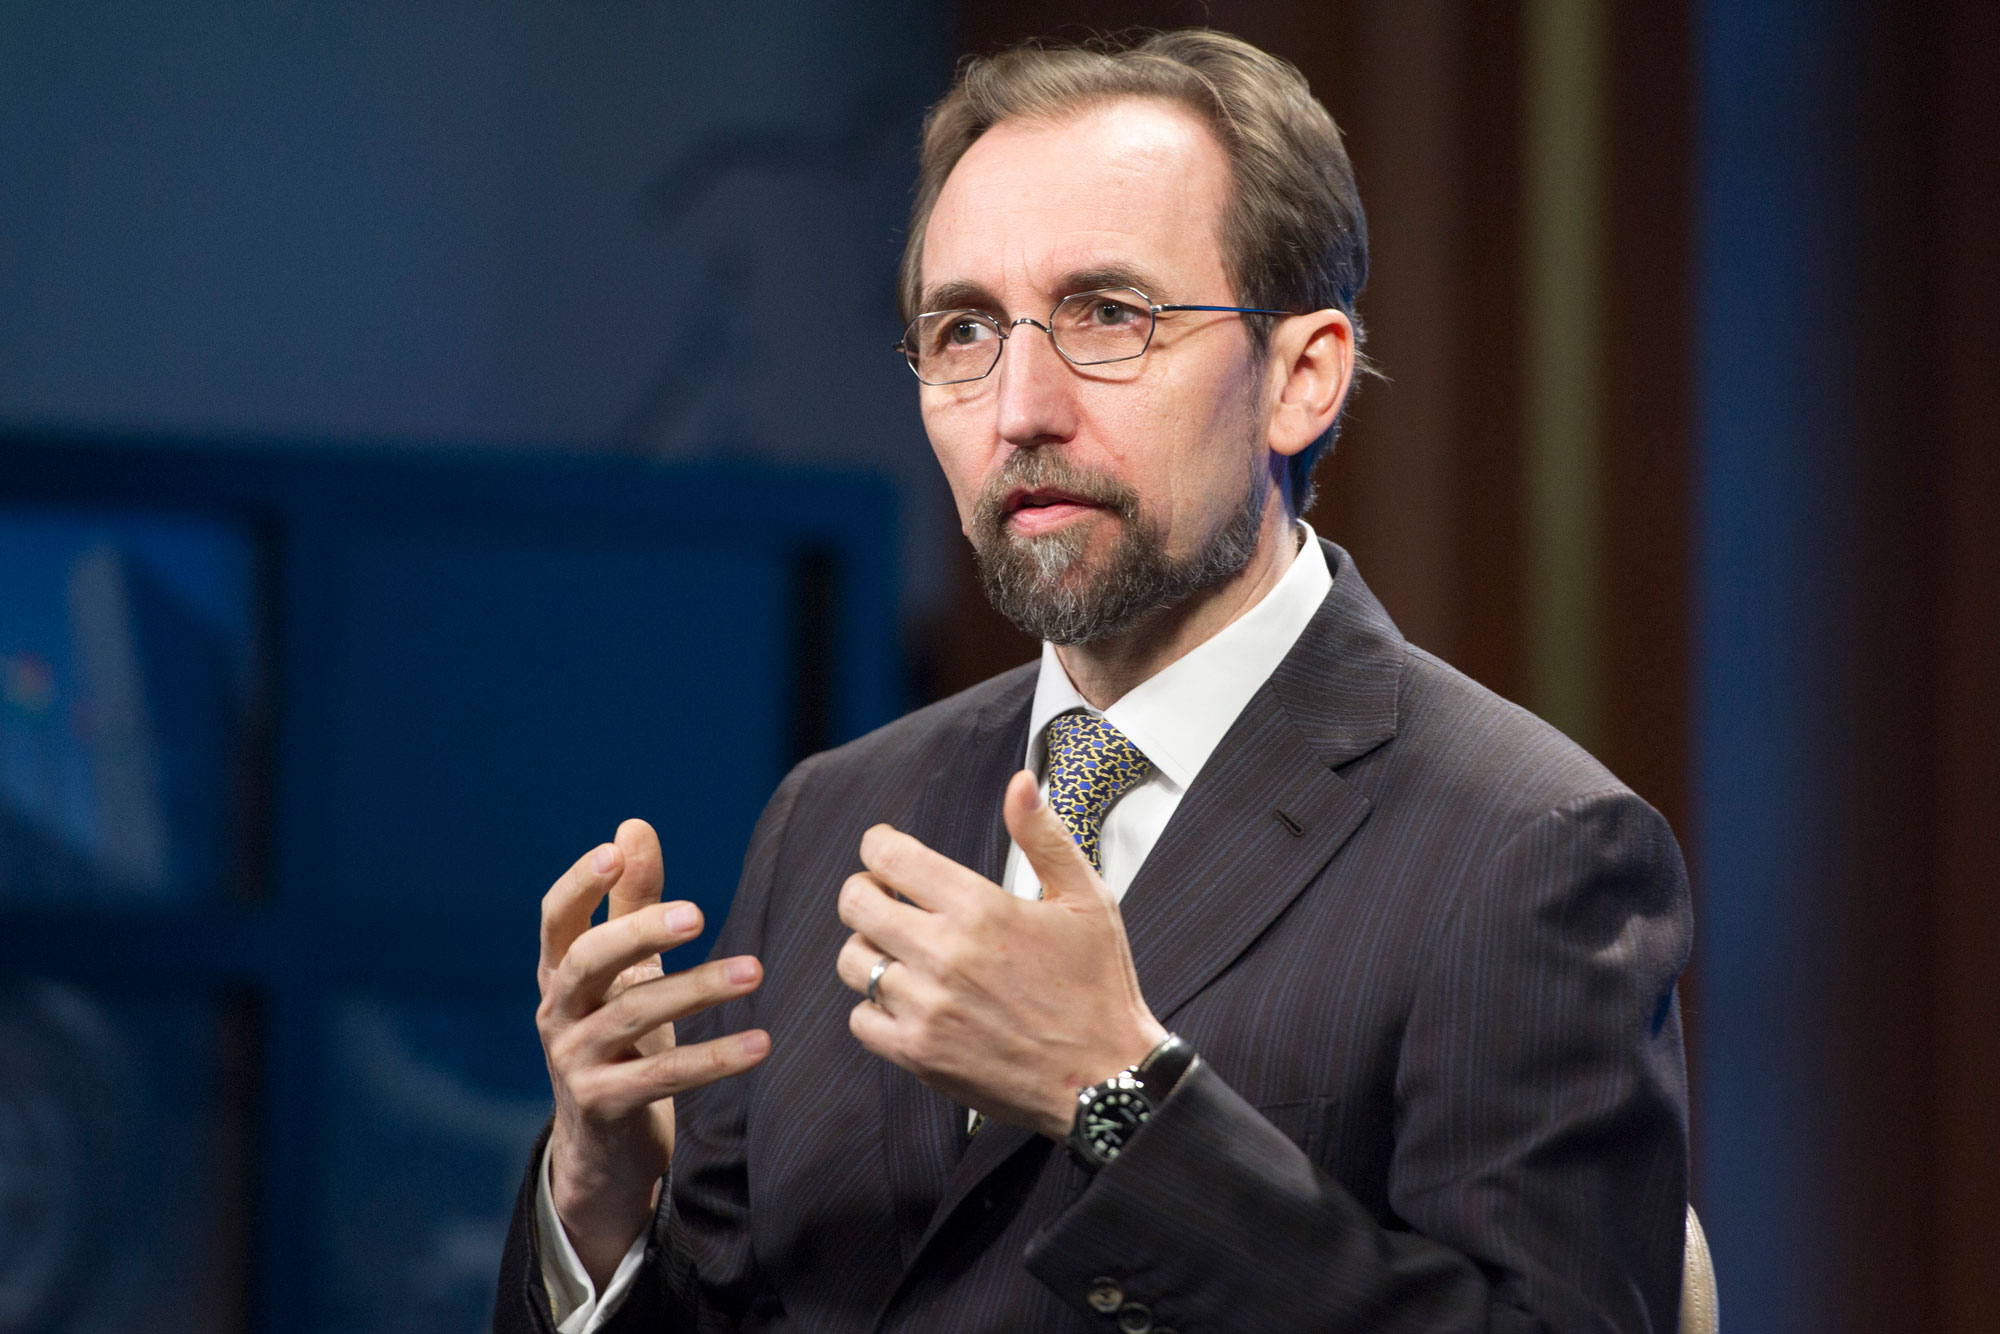 UN Human Rights Chief Concerned over Growing Military Role in Thailand's Government